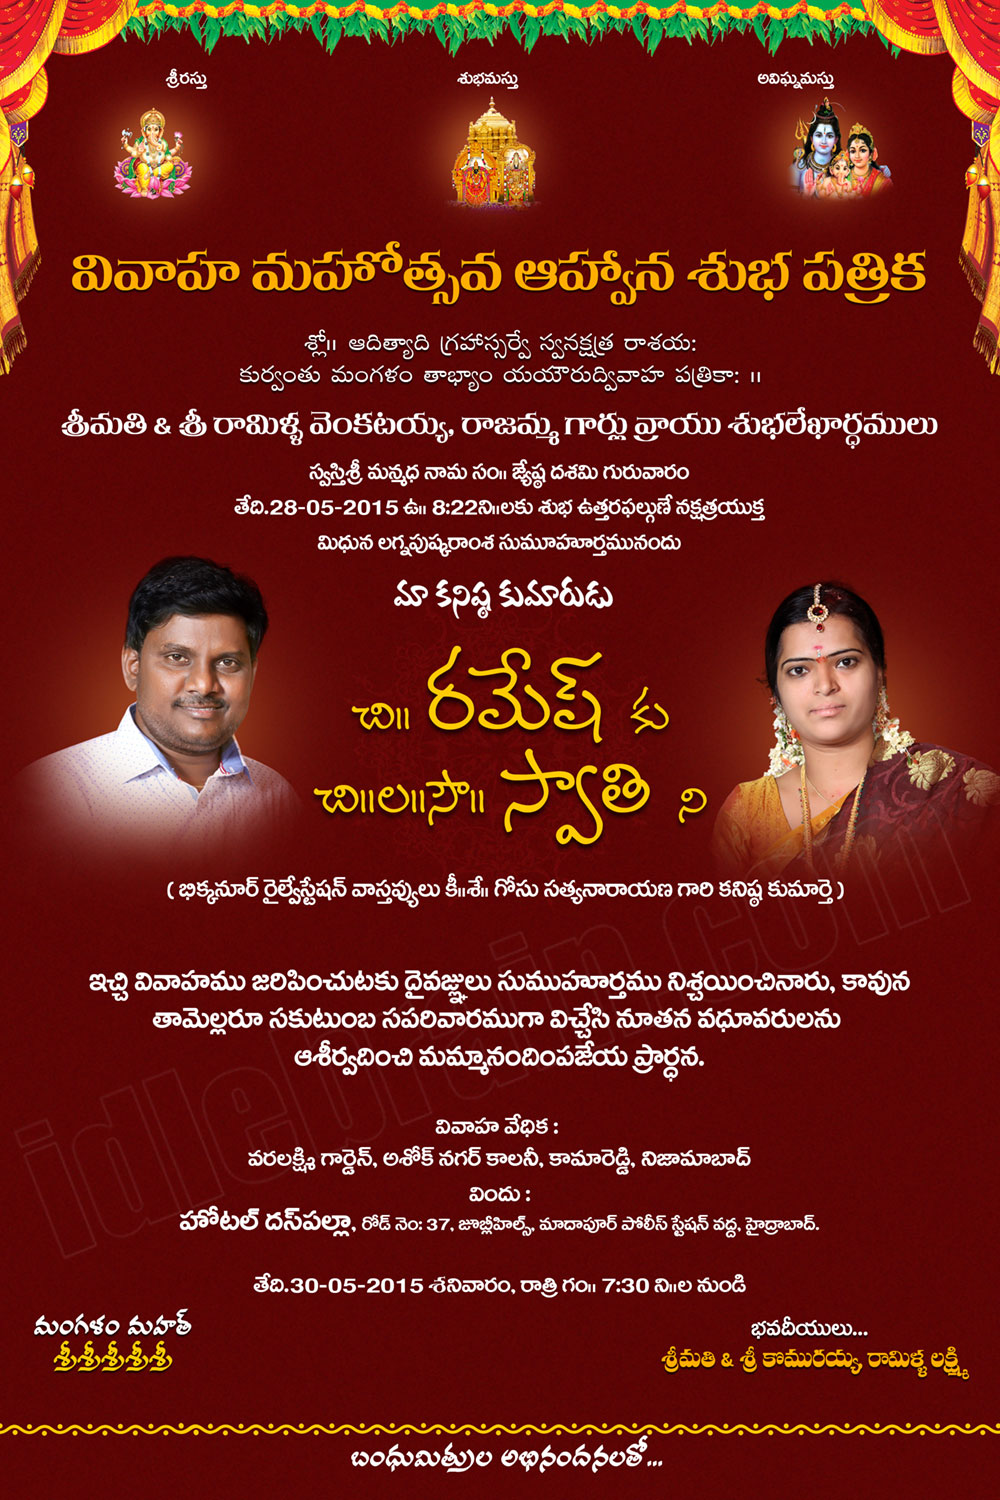 Thagubothu Ramesh wedding invitation - Telugu cinema news